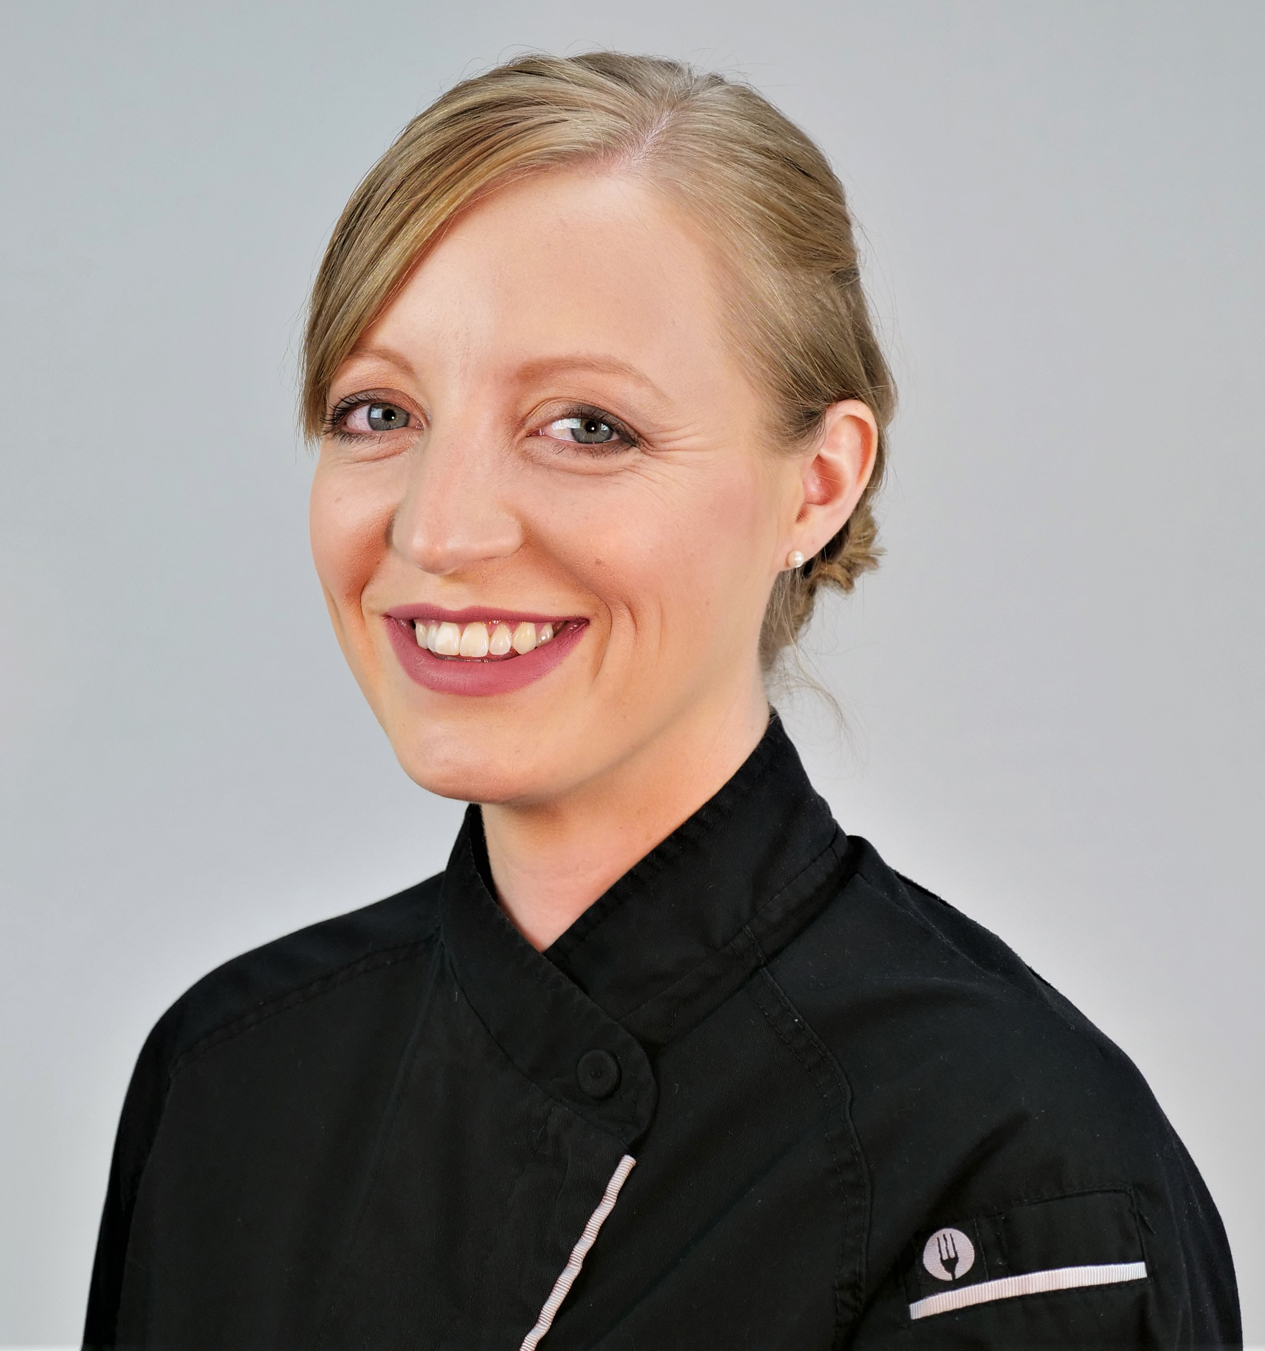 chef profile pic